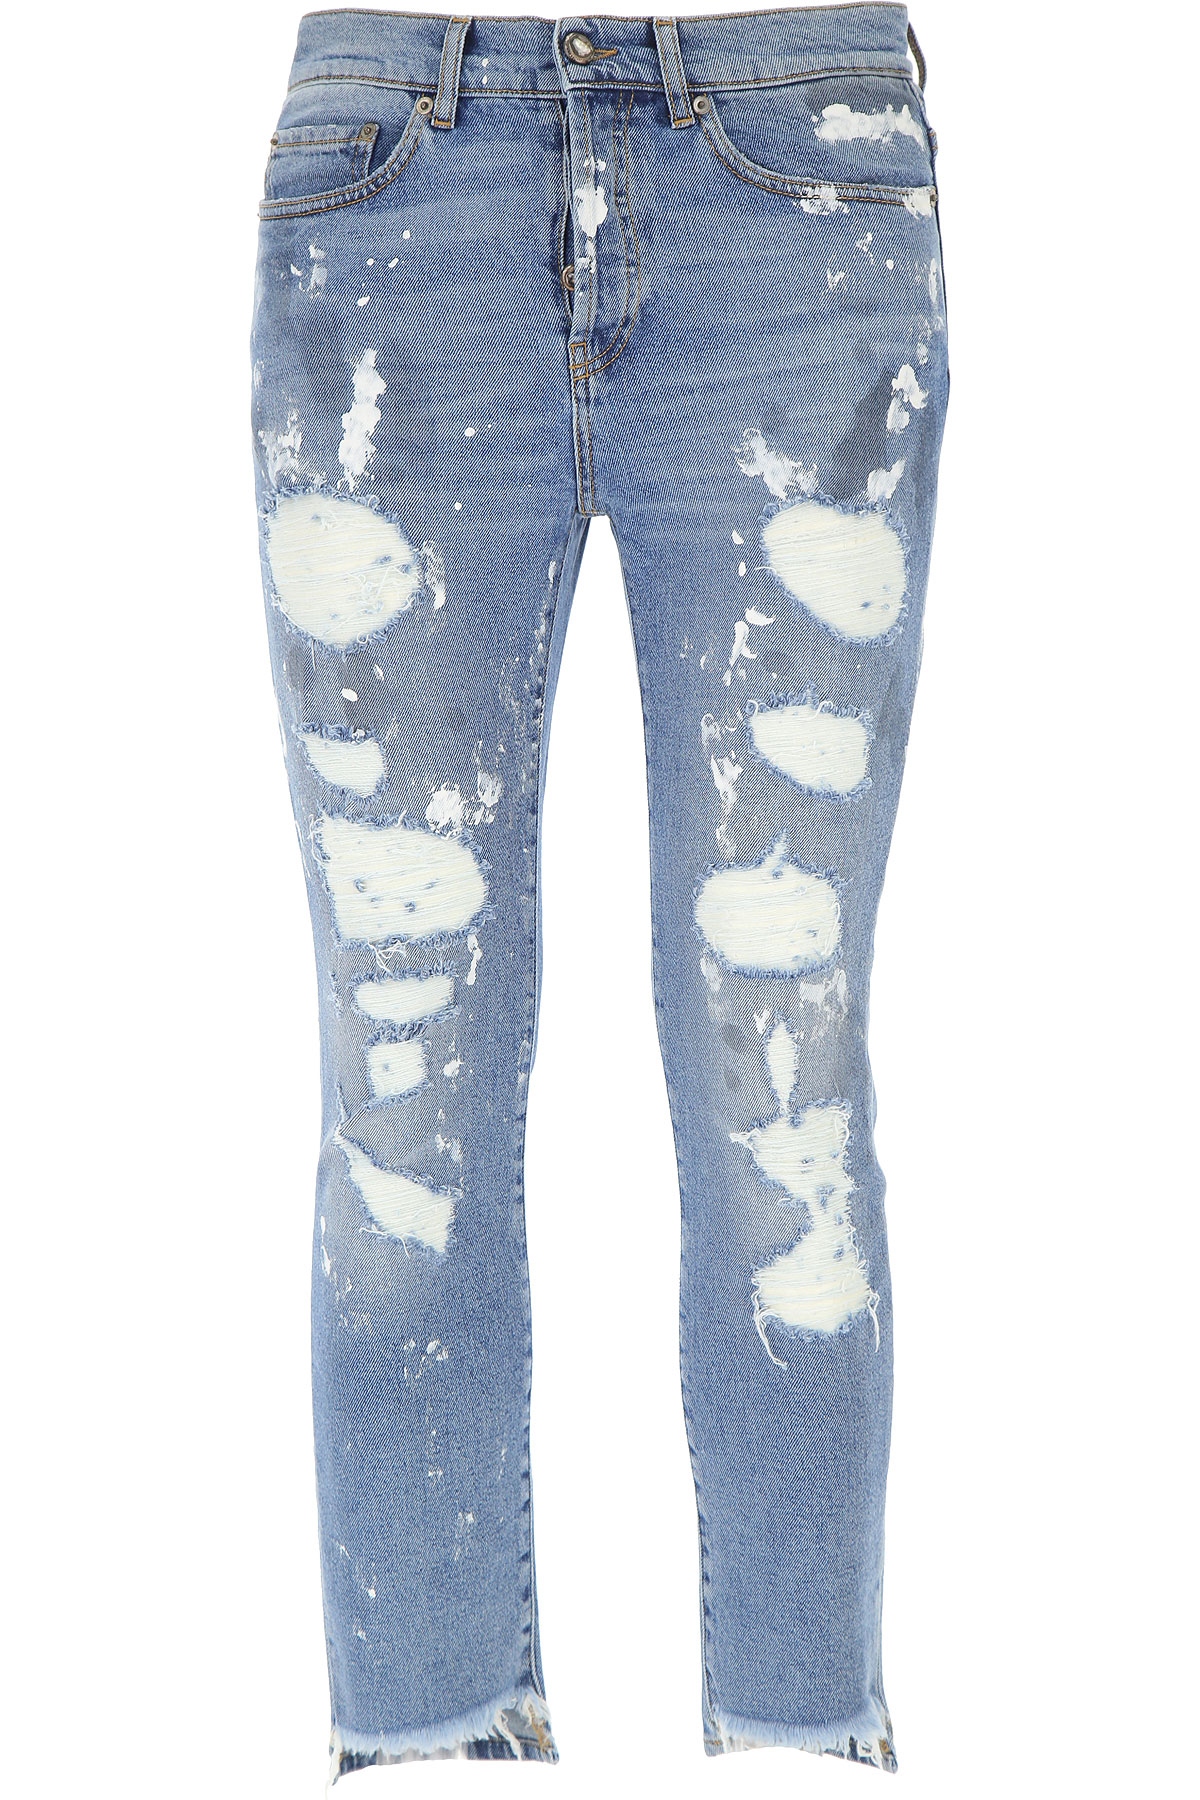 Image of Overcome Jeans, Denim Blue, Cotton, 2017, 30 31 32 33 34 36